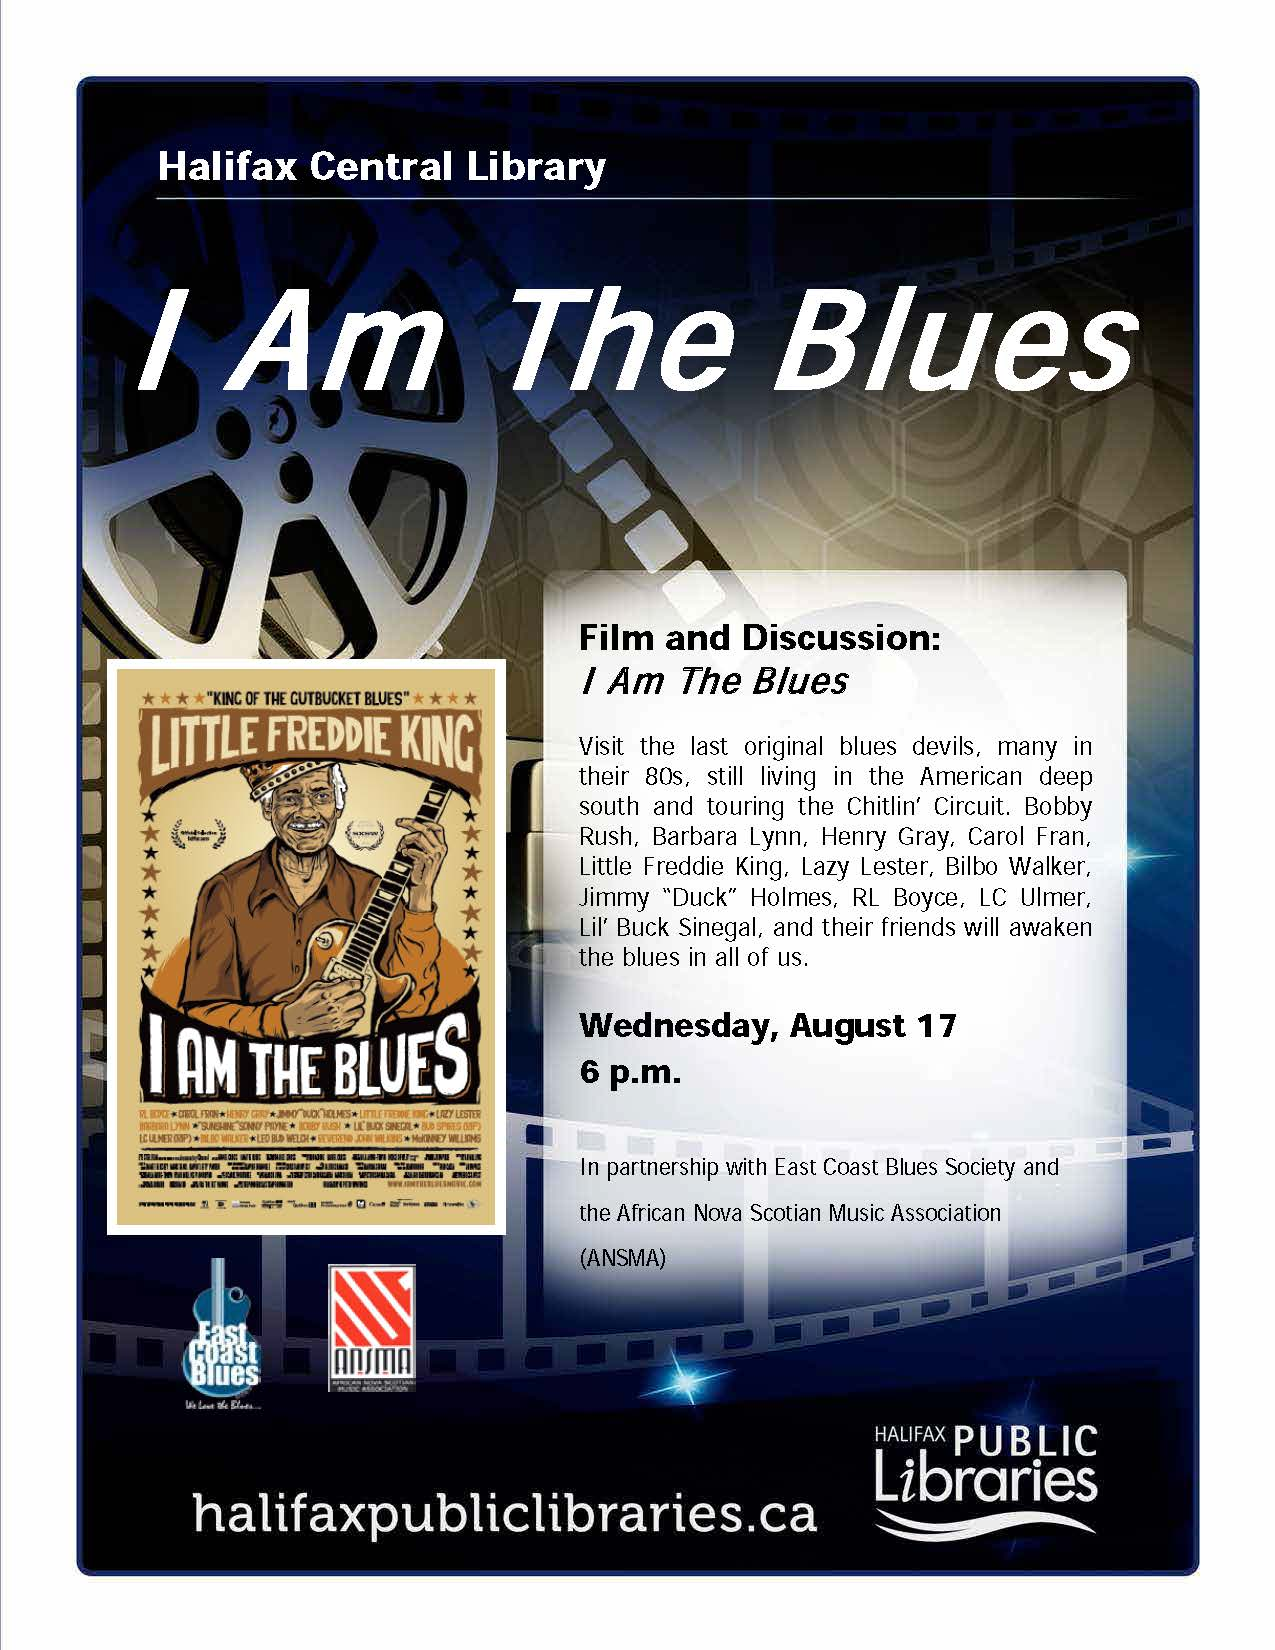 I am the blues, Halifax Central Library, Wednesday 17 at 6pm